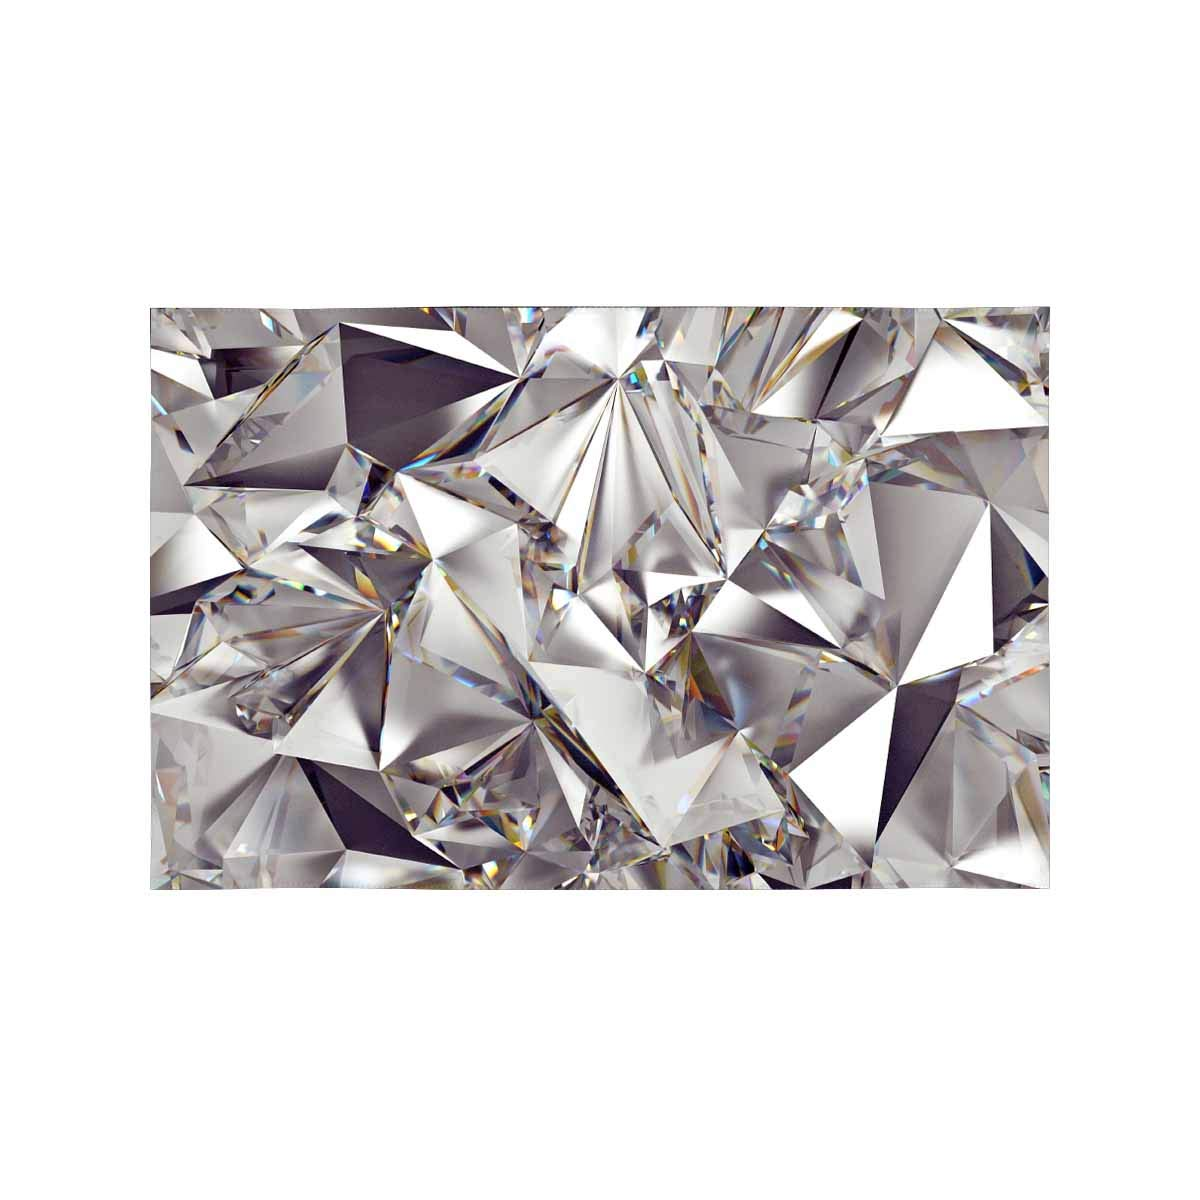 Mkhert Funny Luxury 3d Abstract Crystal Diamond Placemats Table Mats For Dining Room Kitchen Table Decoration 12x18 Inch Set Of 4 Walmart Com Walmart Com